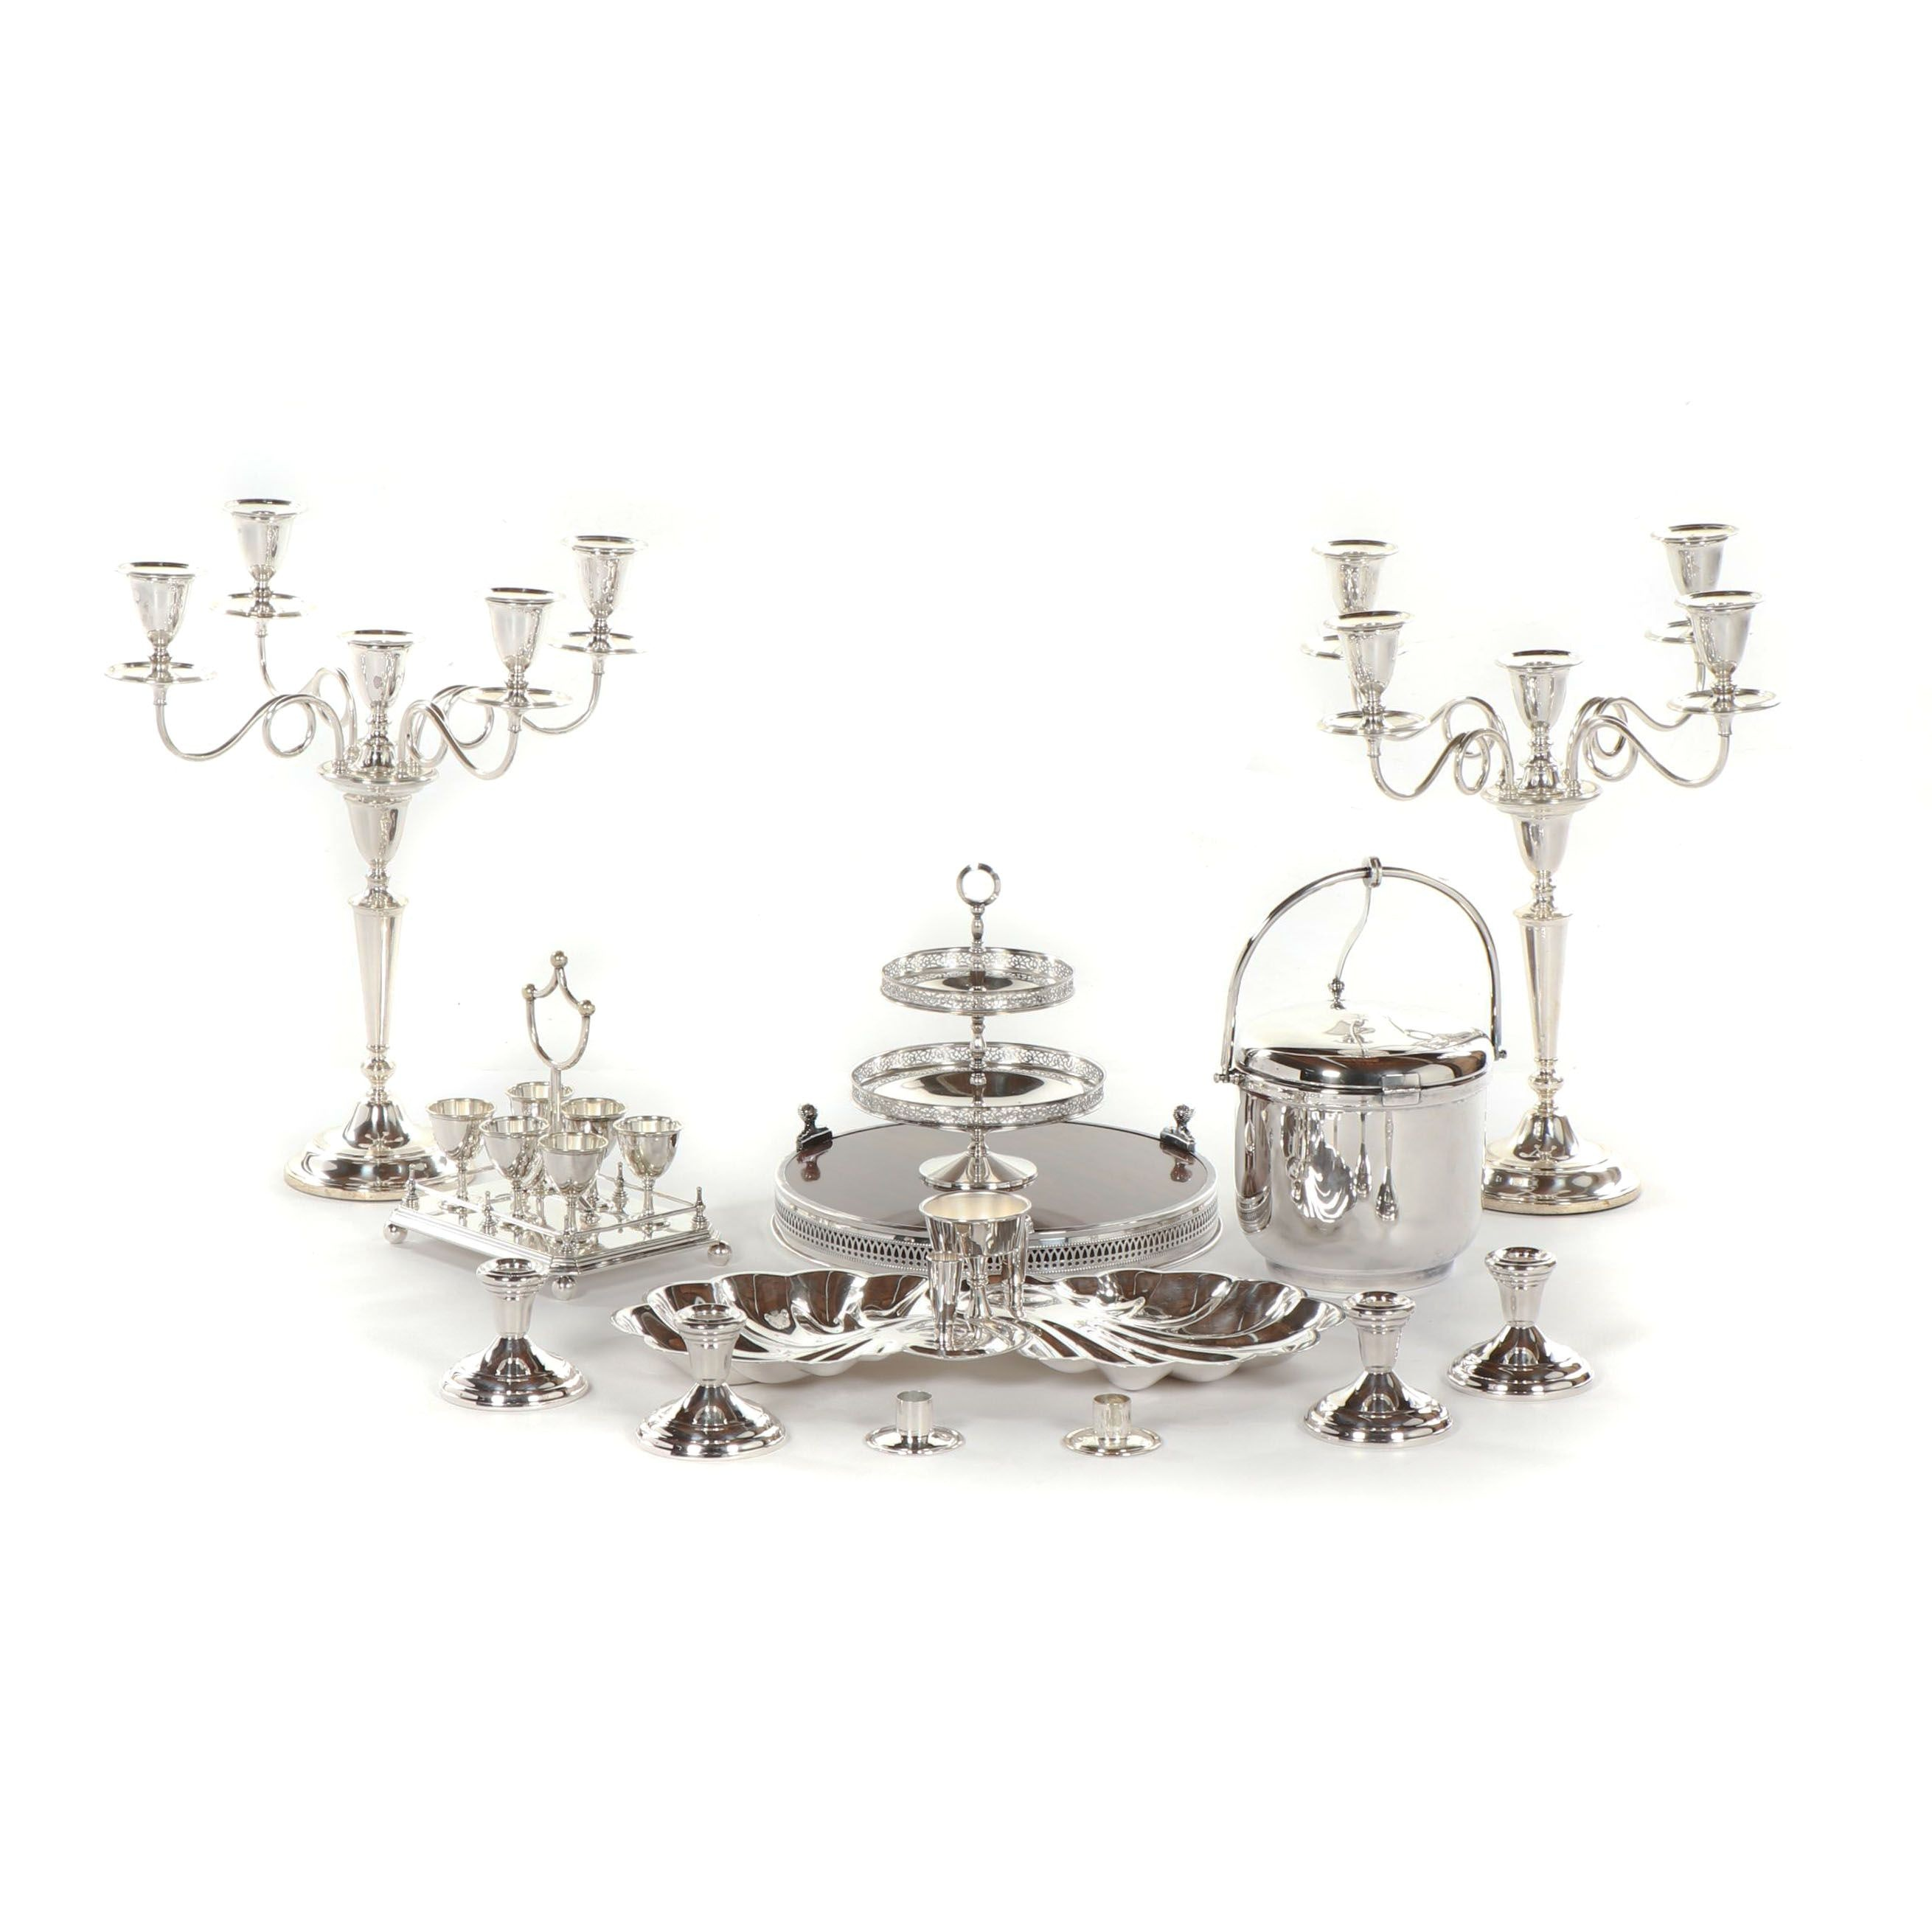 Garrard & Co. Regent Plate Candelabra with Other Silver Plate Tableware